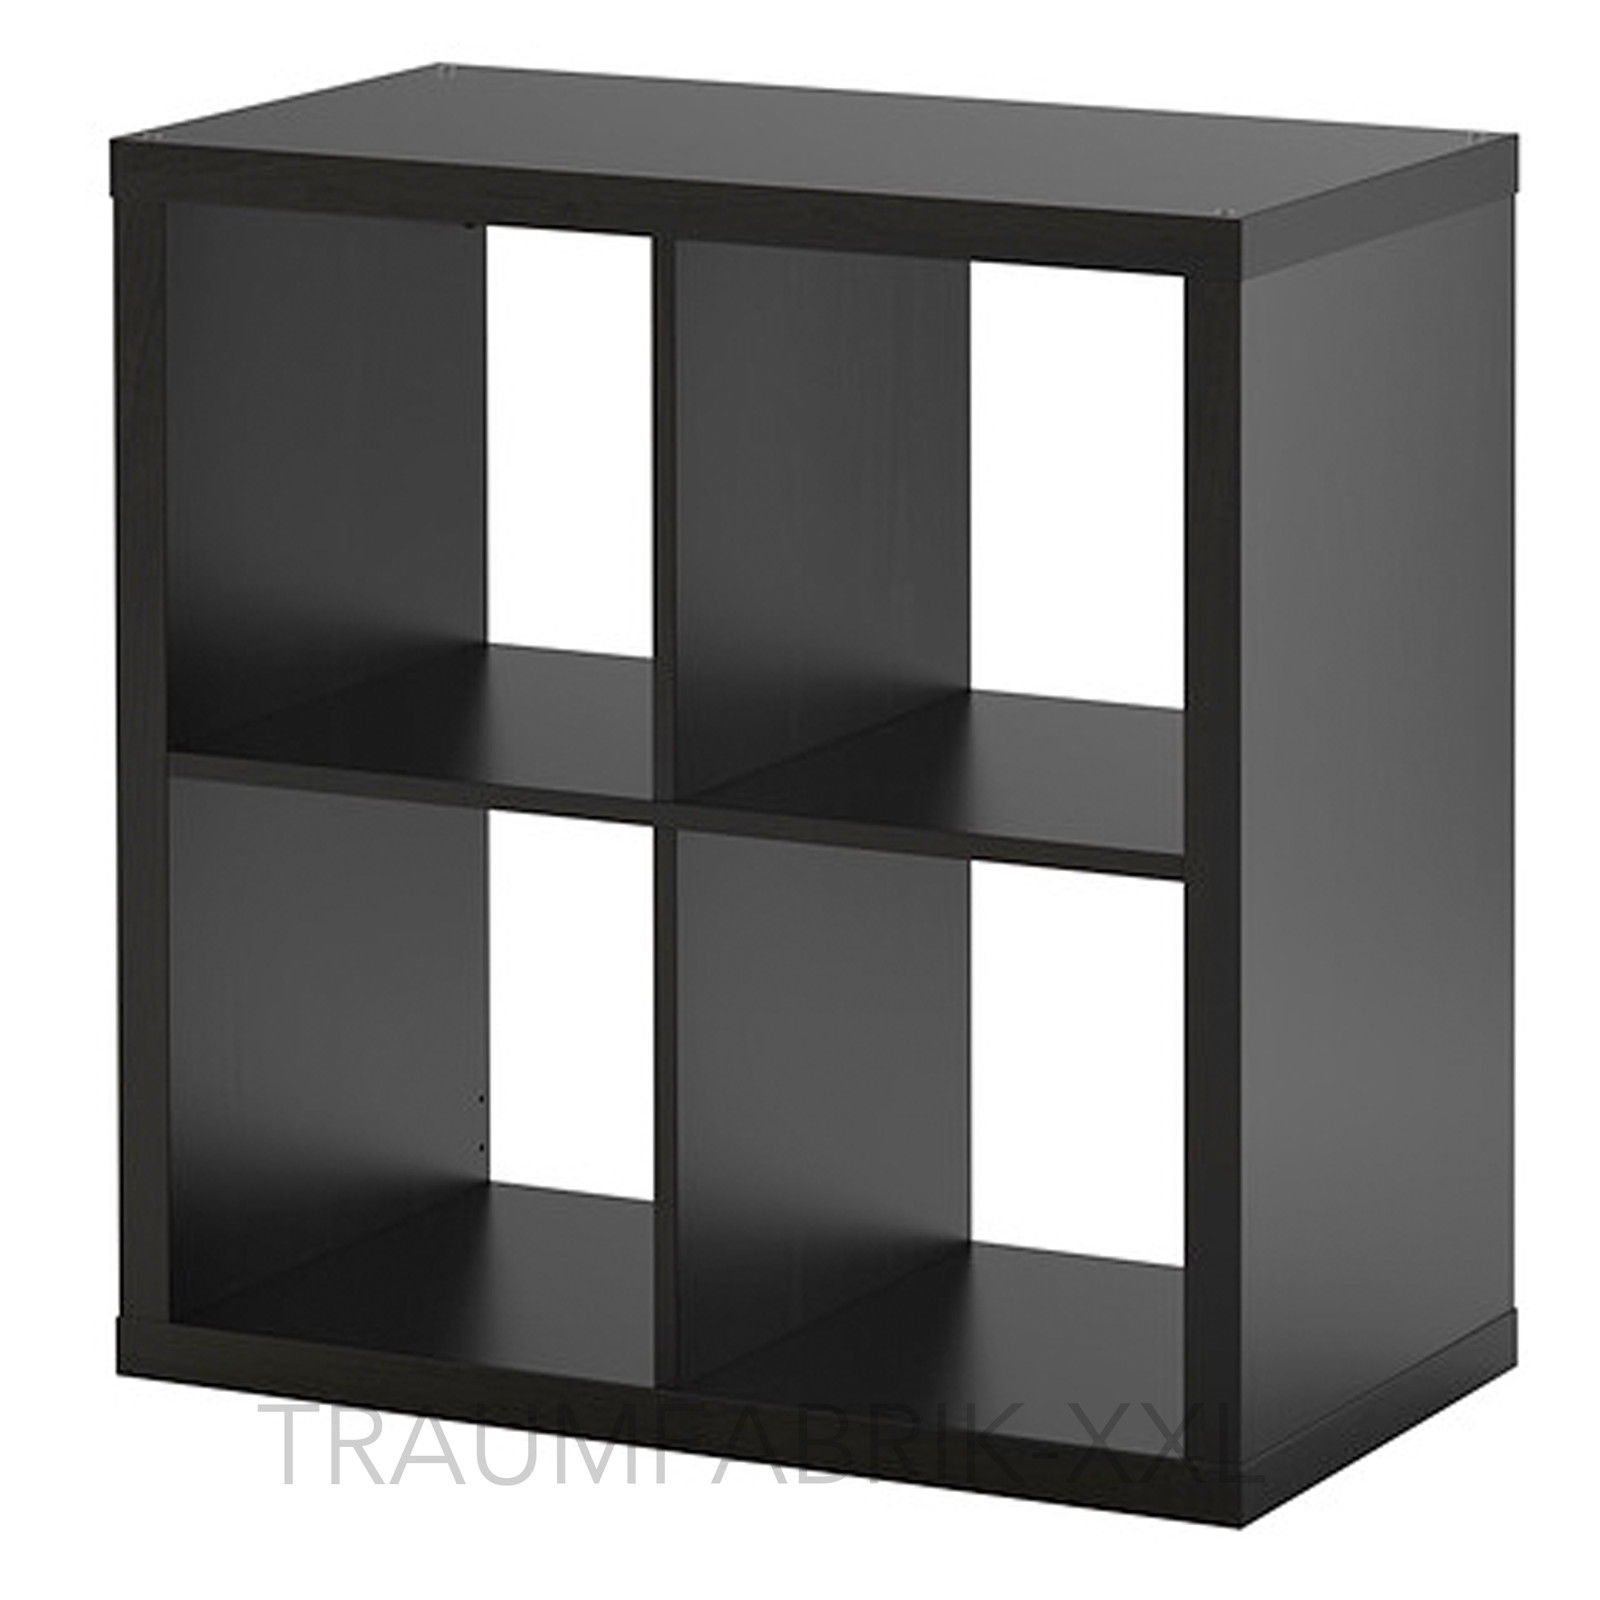 ikea kallax stauraumregal schwarz braun 77x77cm. Black Bedroom Furniture Sets. Home Design Ideas